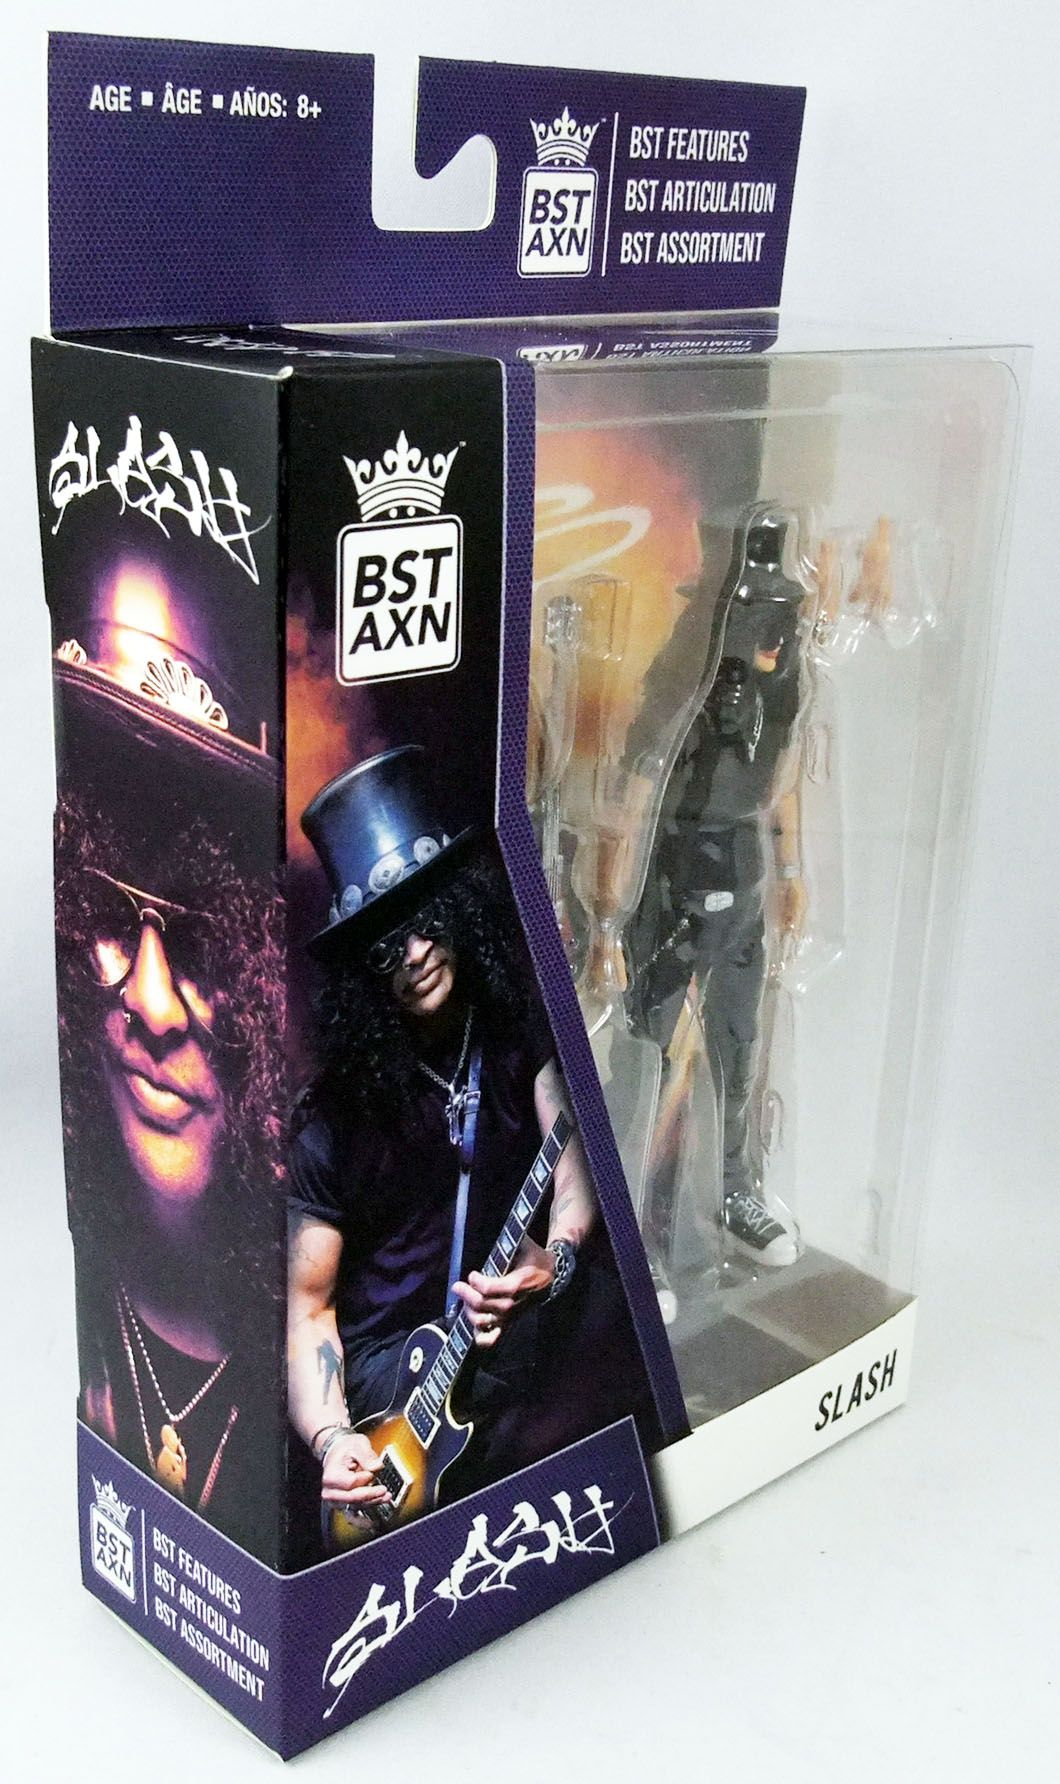 Guns N\' Roses - Slash - Figurine 13cm BST AXN The Loyal Subjects